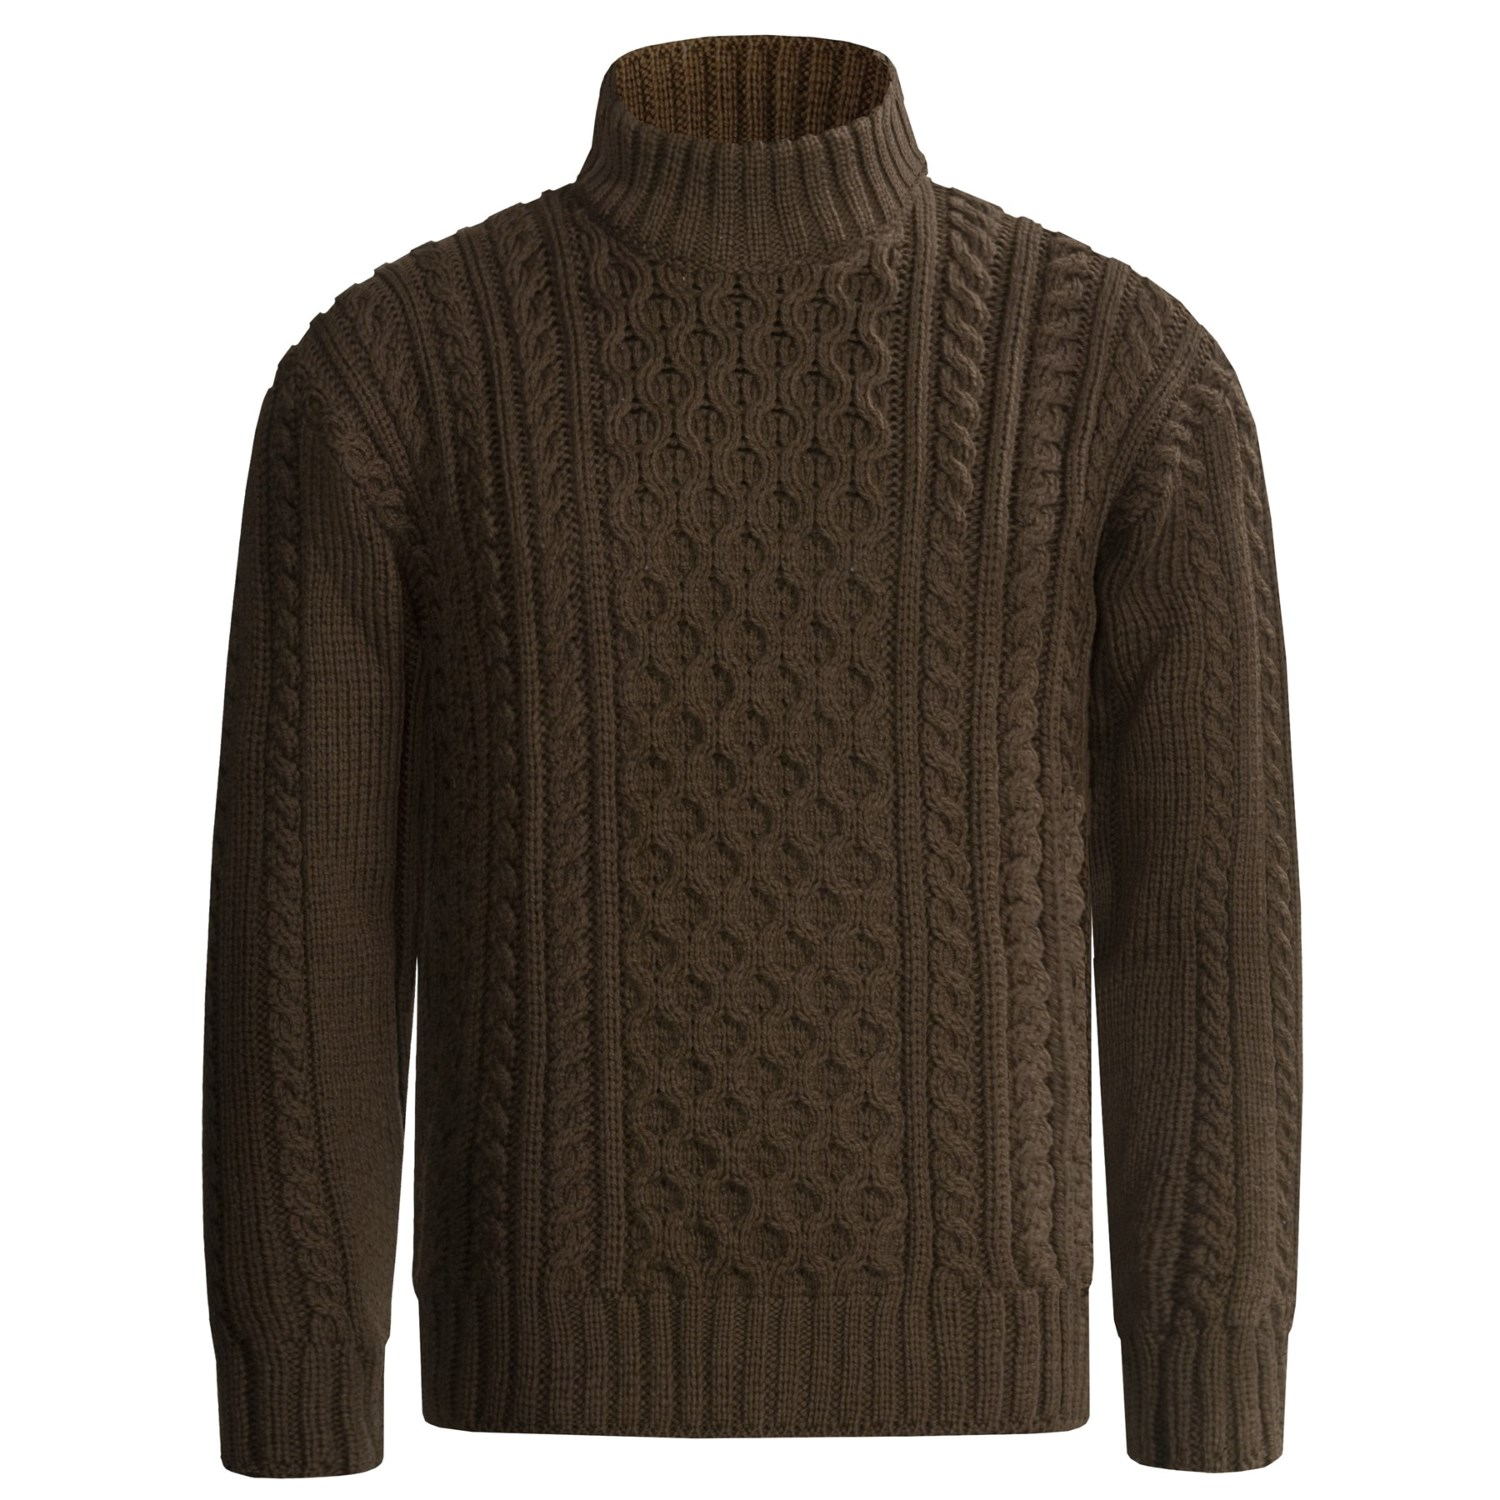 Free shipping and returns on Men's Wool & Wool Blend Sweaters at hitmixeoo.gq